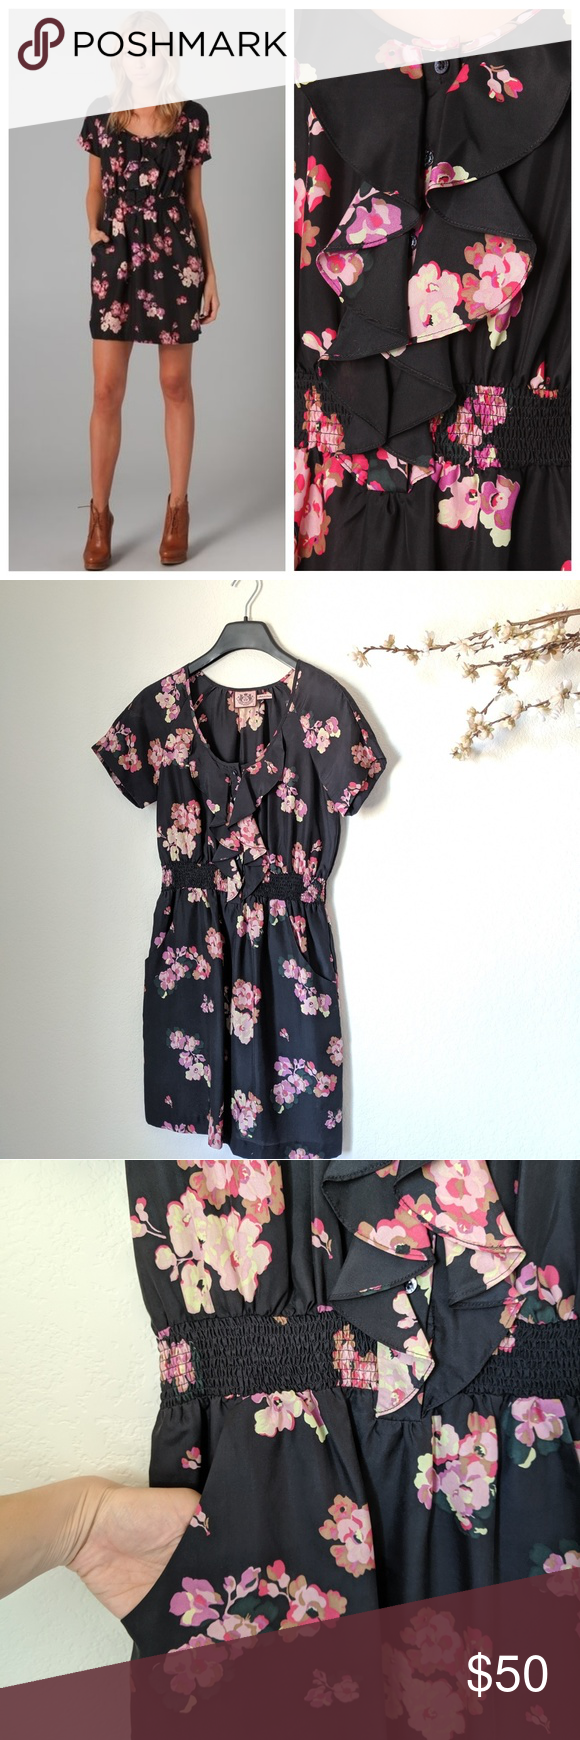 Juicy Couture Scattered Blooms Dress Juicy Couture Floral Dress Grey Black Pink Yellow Juicy Scattered Blooms Dress Juicy Couture Dress Juicy Couture Couture [ 1740 x 580 Pixel ]